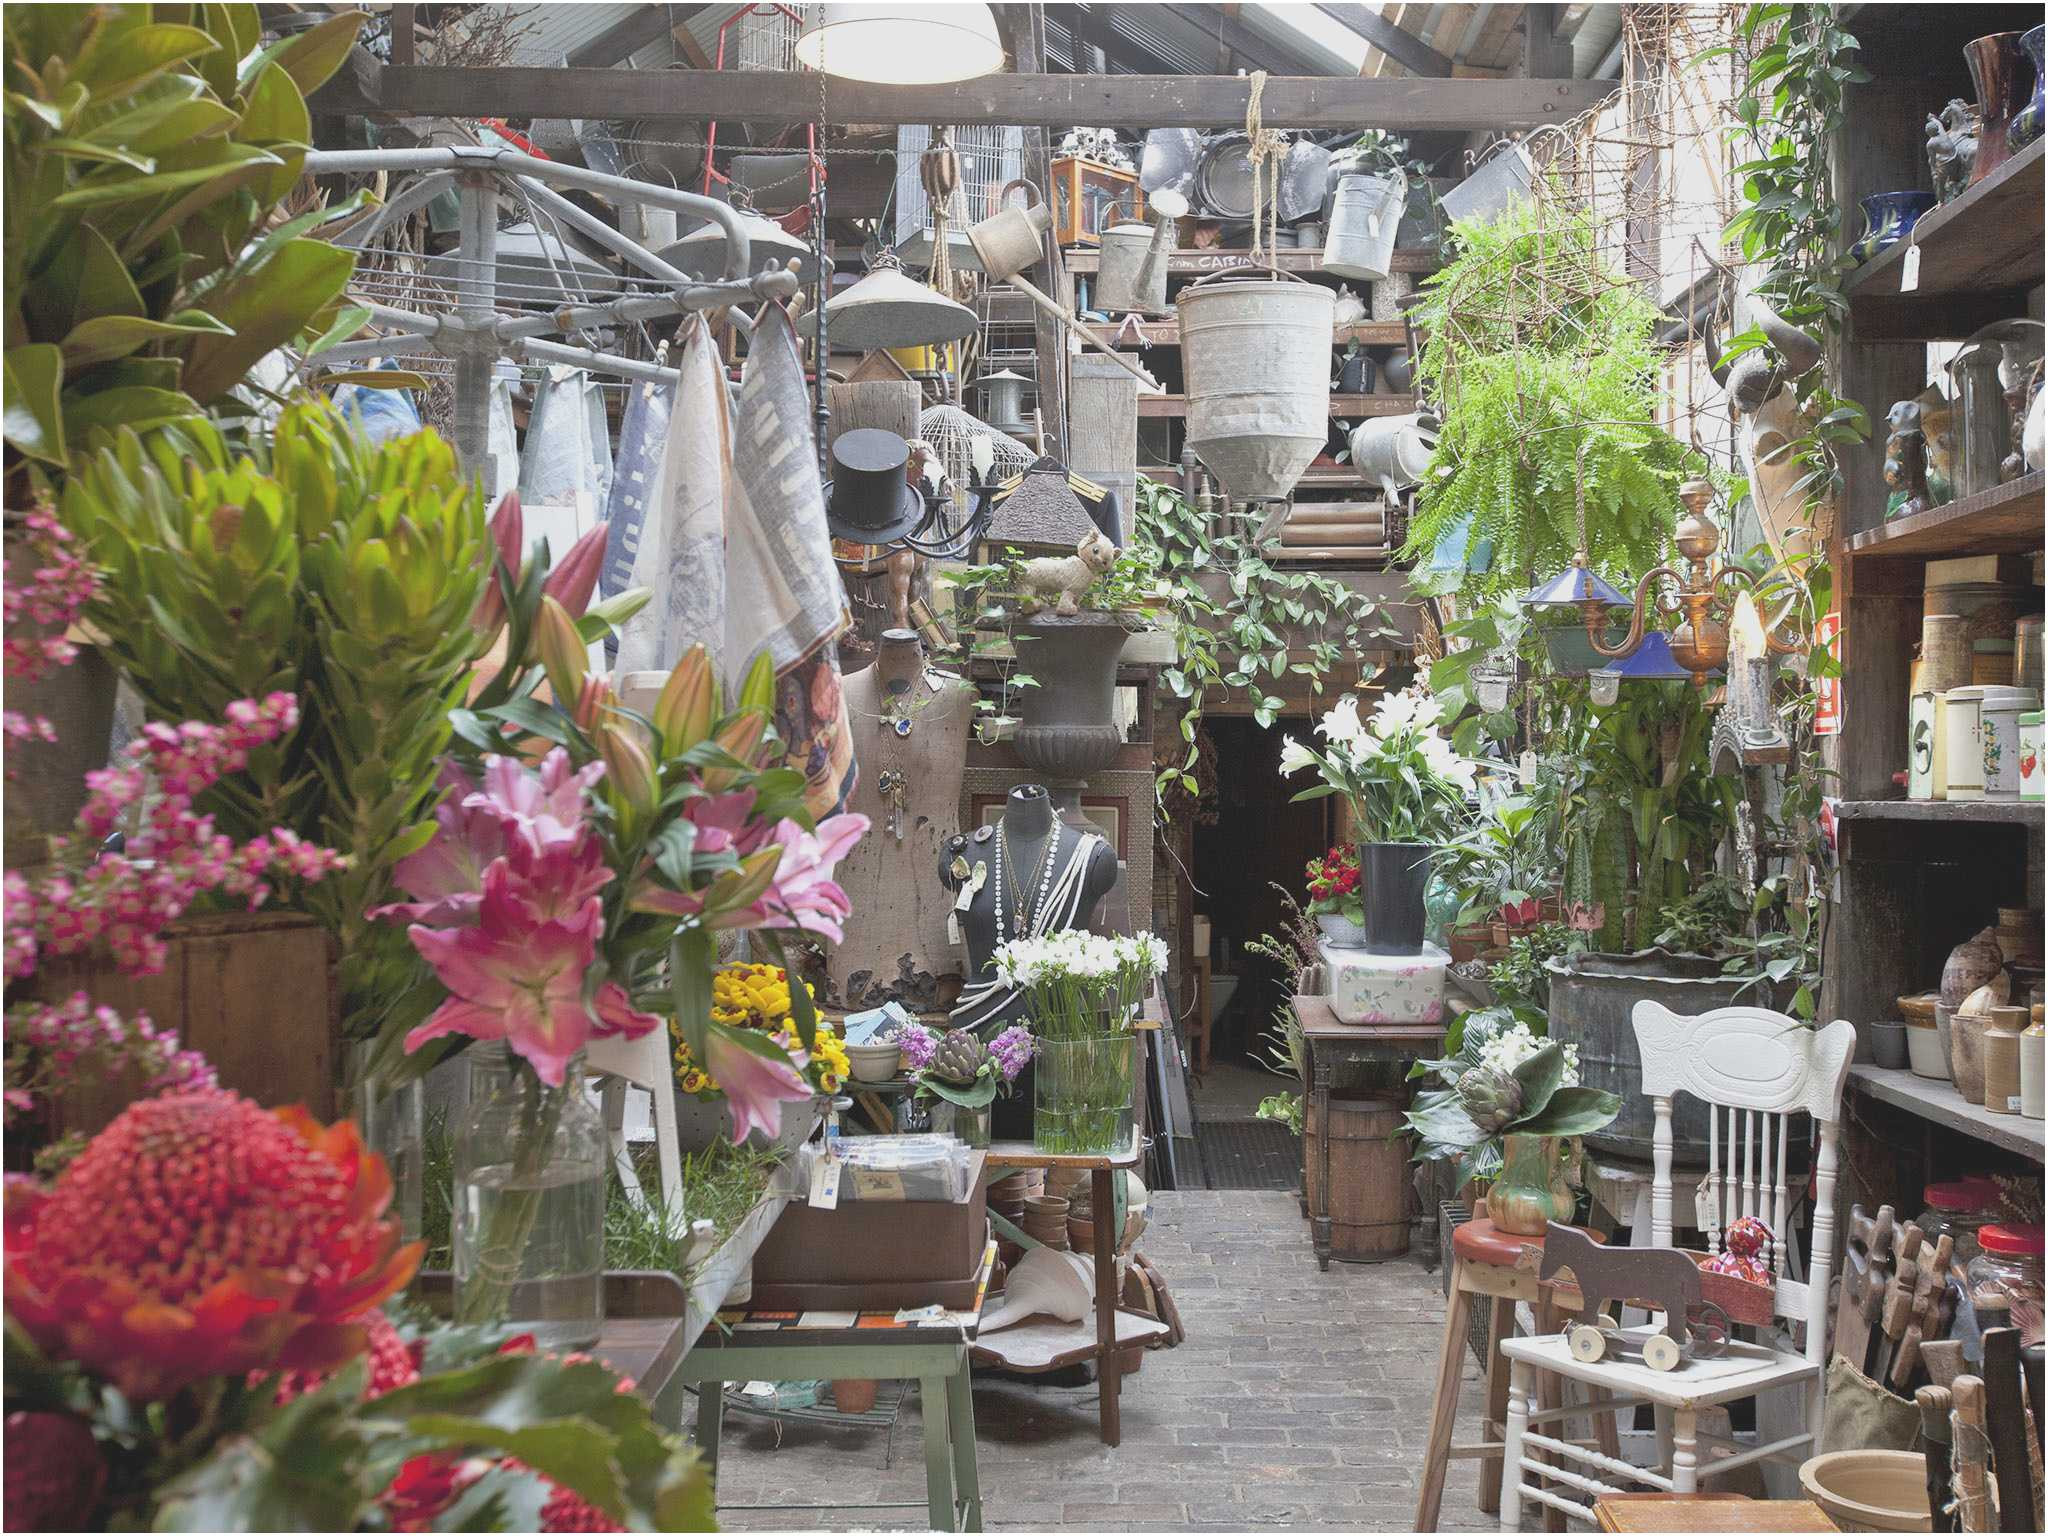 Interior shot of antique shop Seasonal Concepts with flowers old crockery and garden tools